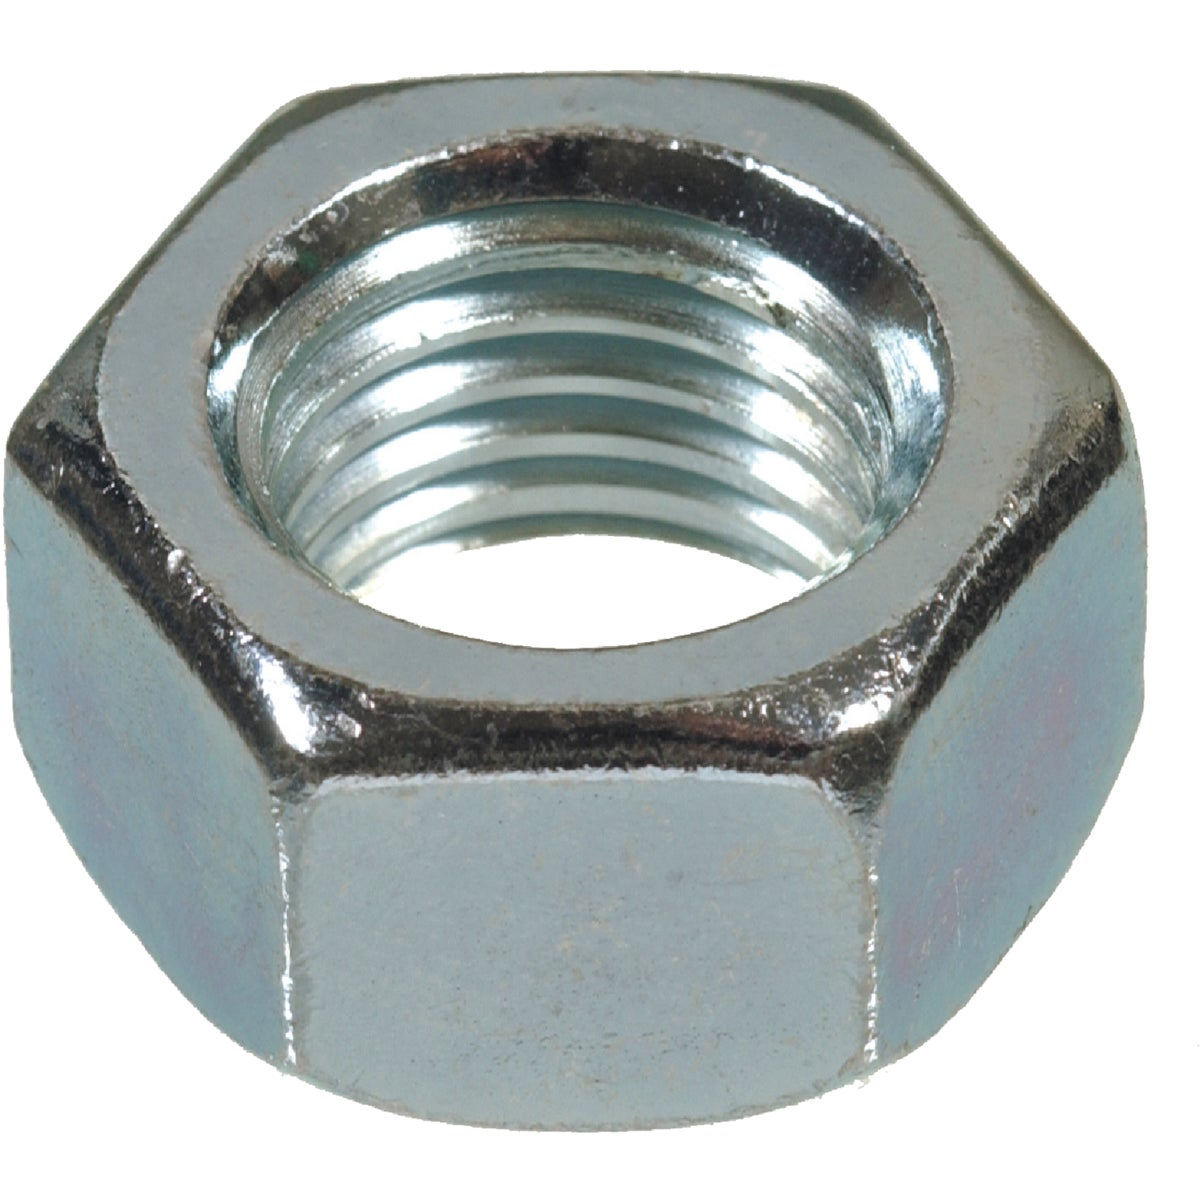 100PC 3/8-16 CRS HEX NUT